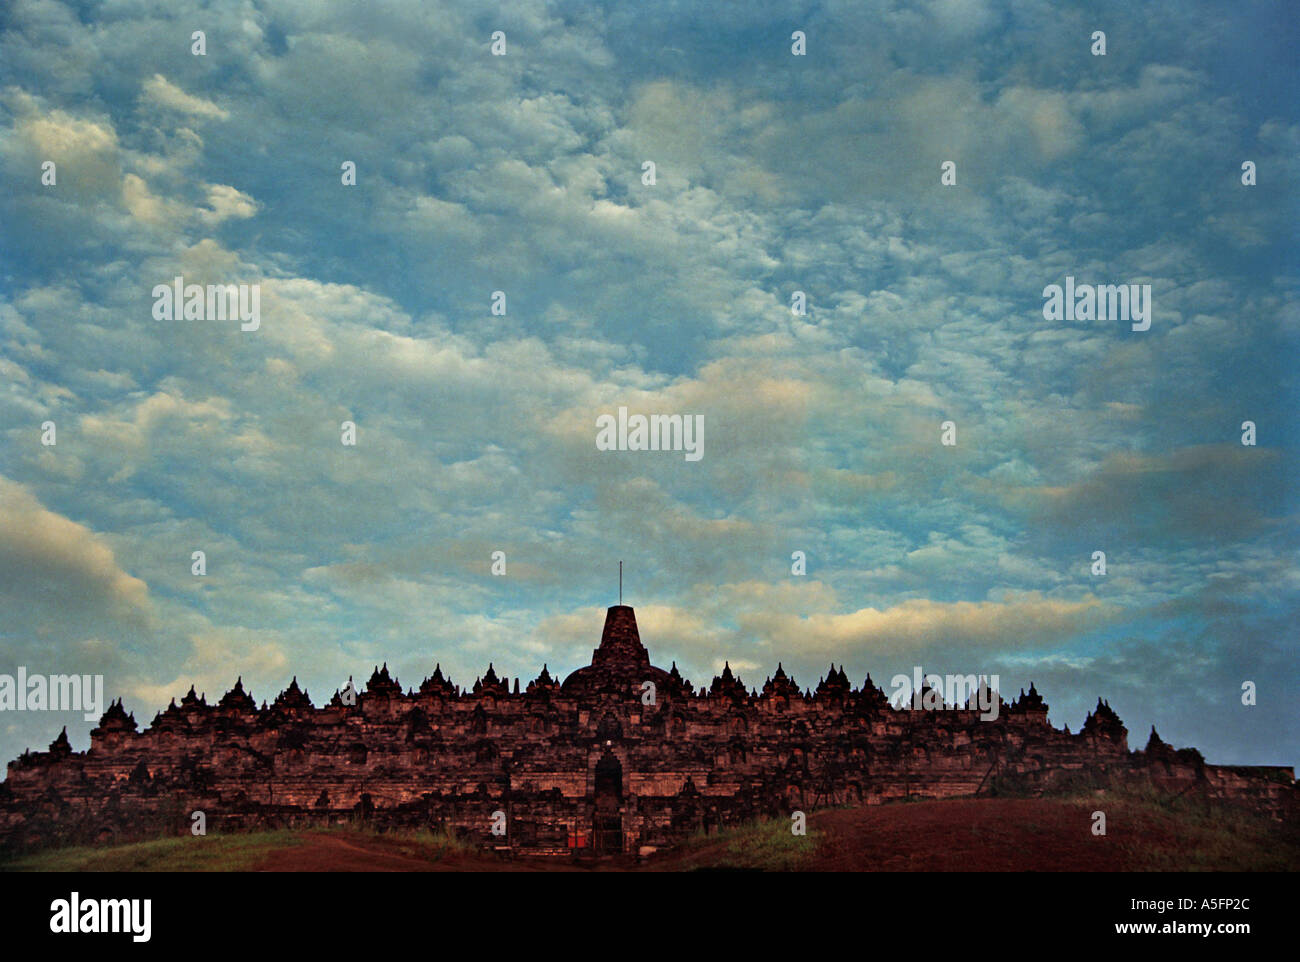 The Hindu Buddhist temple stupa of Borobudur a colossal stupa Central Java Indonesia View of the entire monument Java - Stock Image